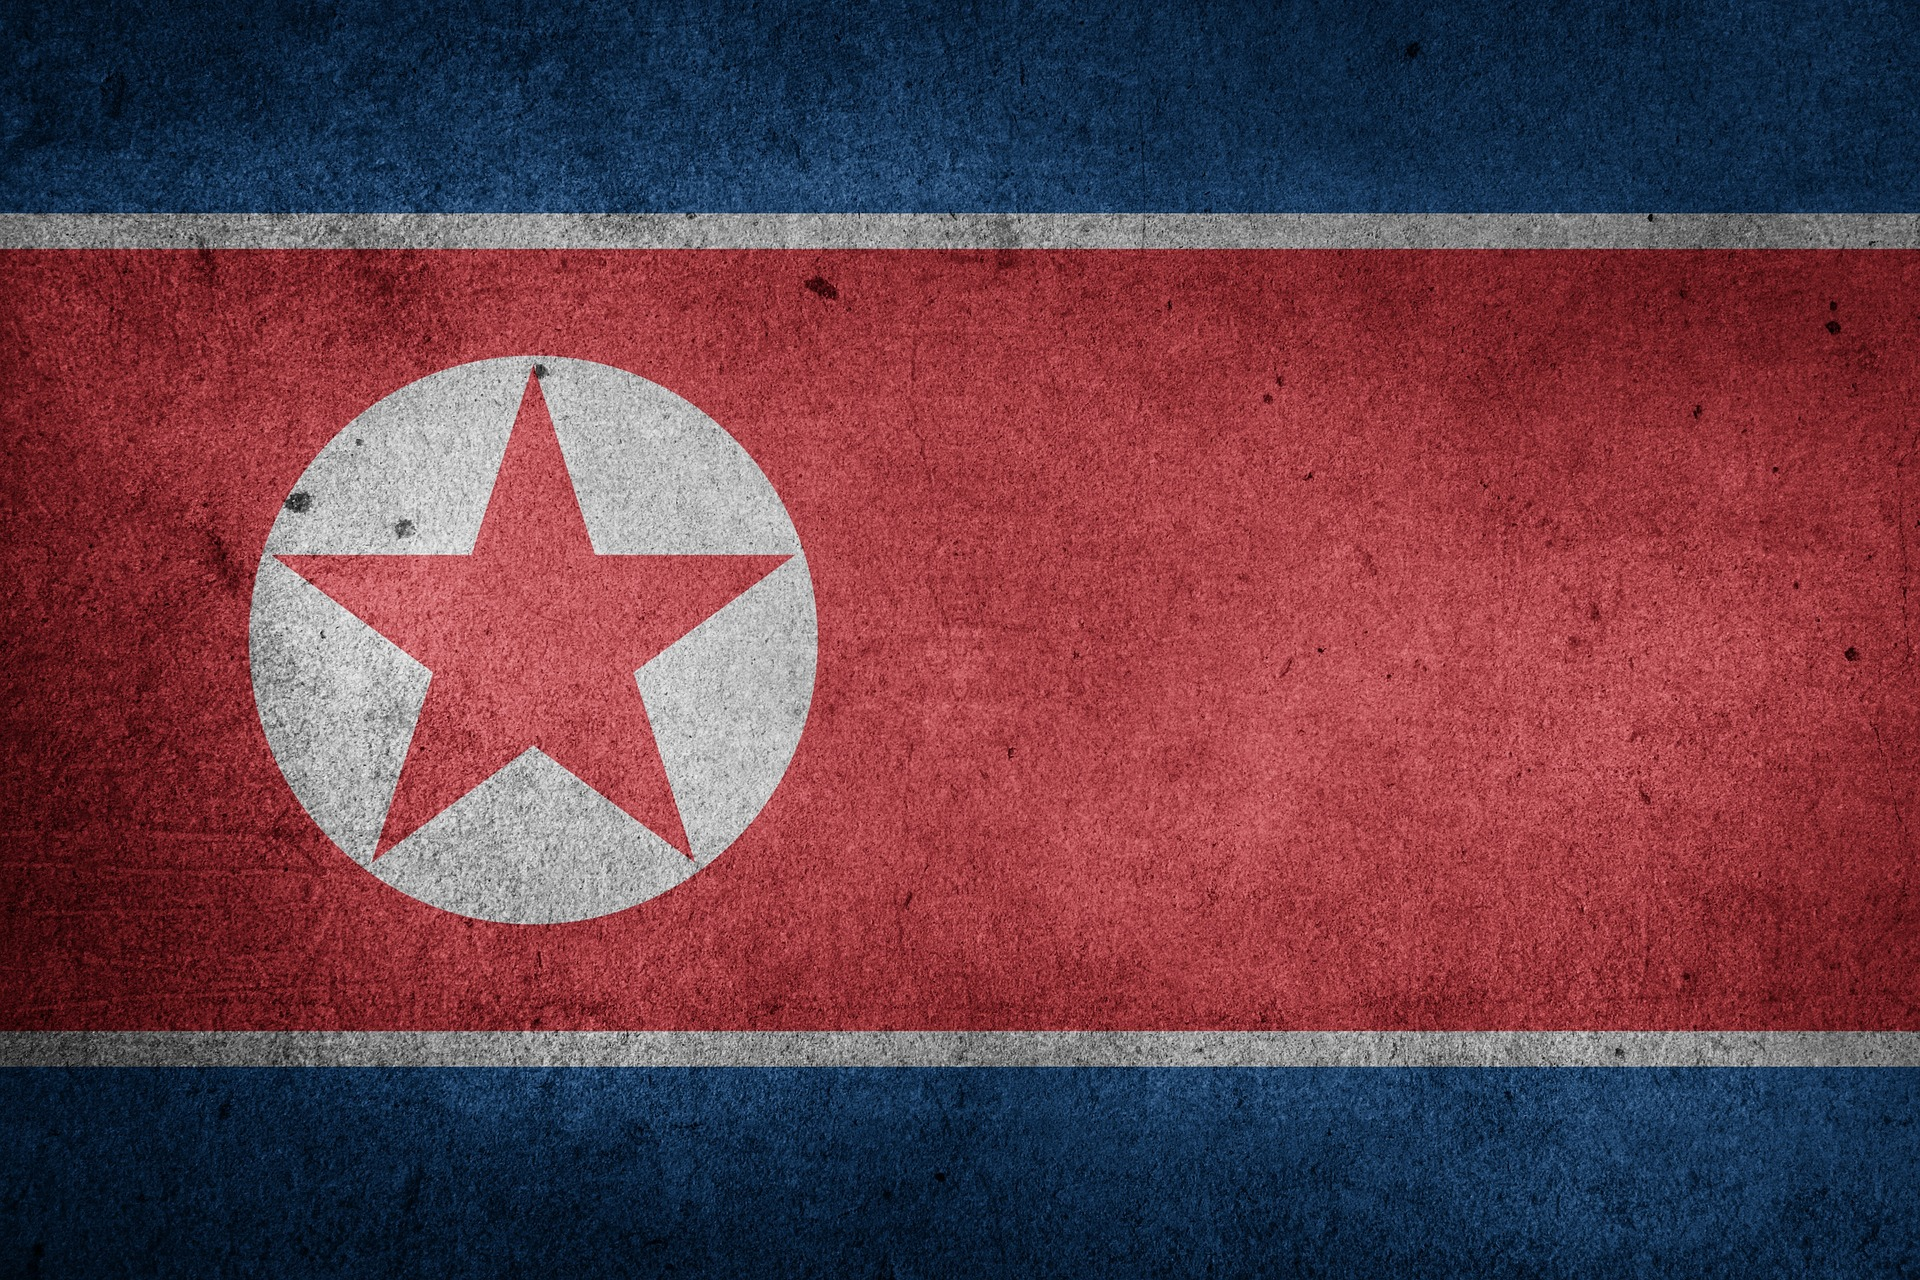 Pyongyang denies UN claims North Korean hackers stole $2 billion